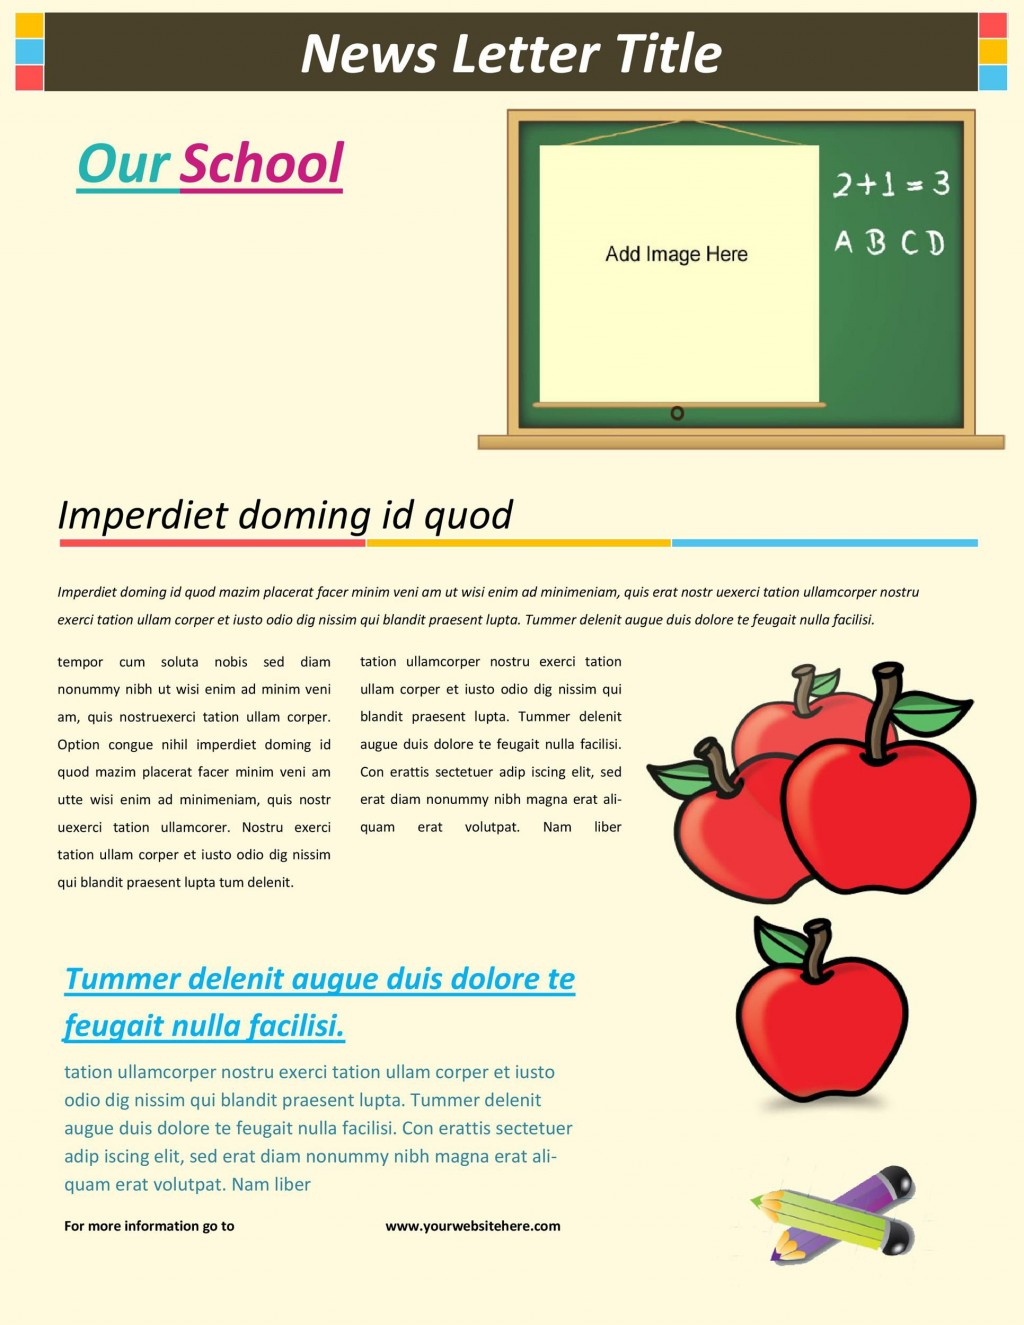 005 Simple School Newsletter Template Word Concept  Free Classroom For MicrosoftLarge